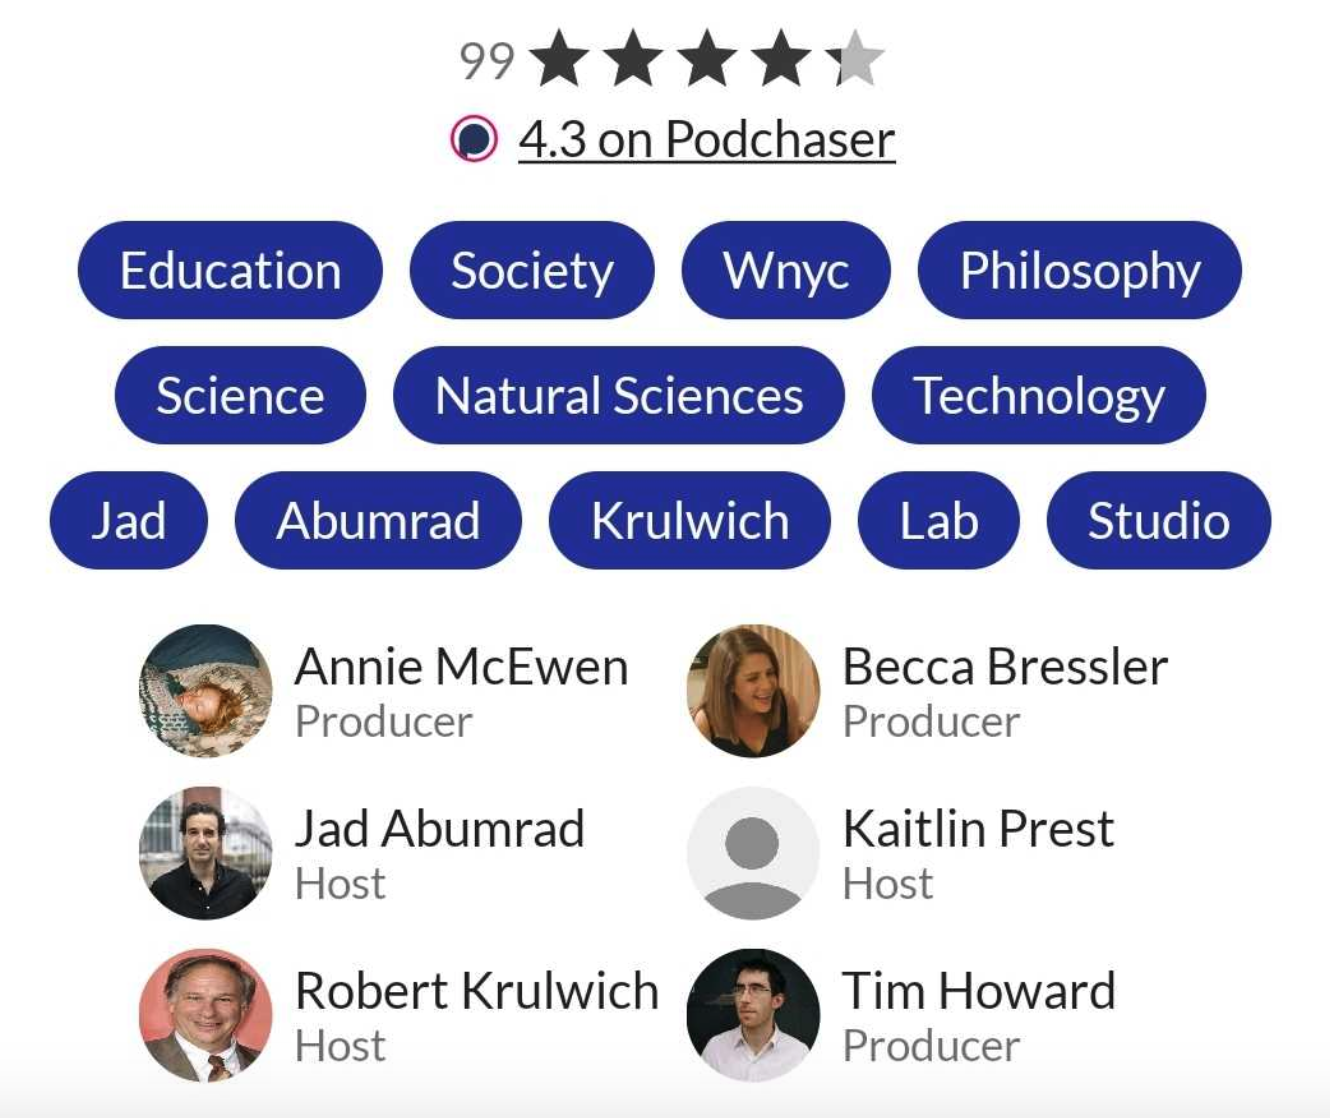 View Podchaser ratings and creator credits on Player FM